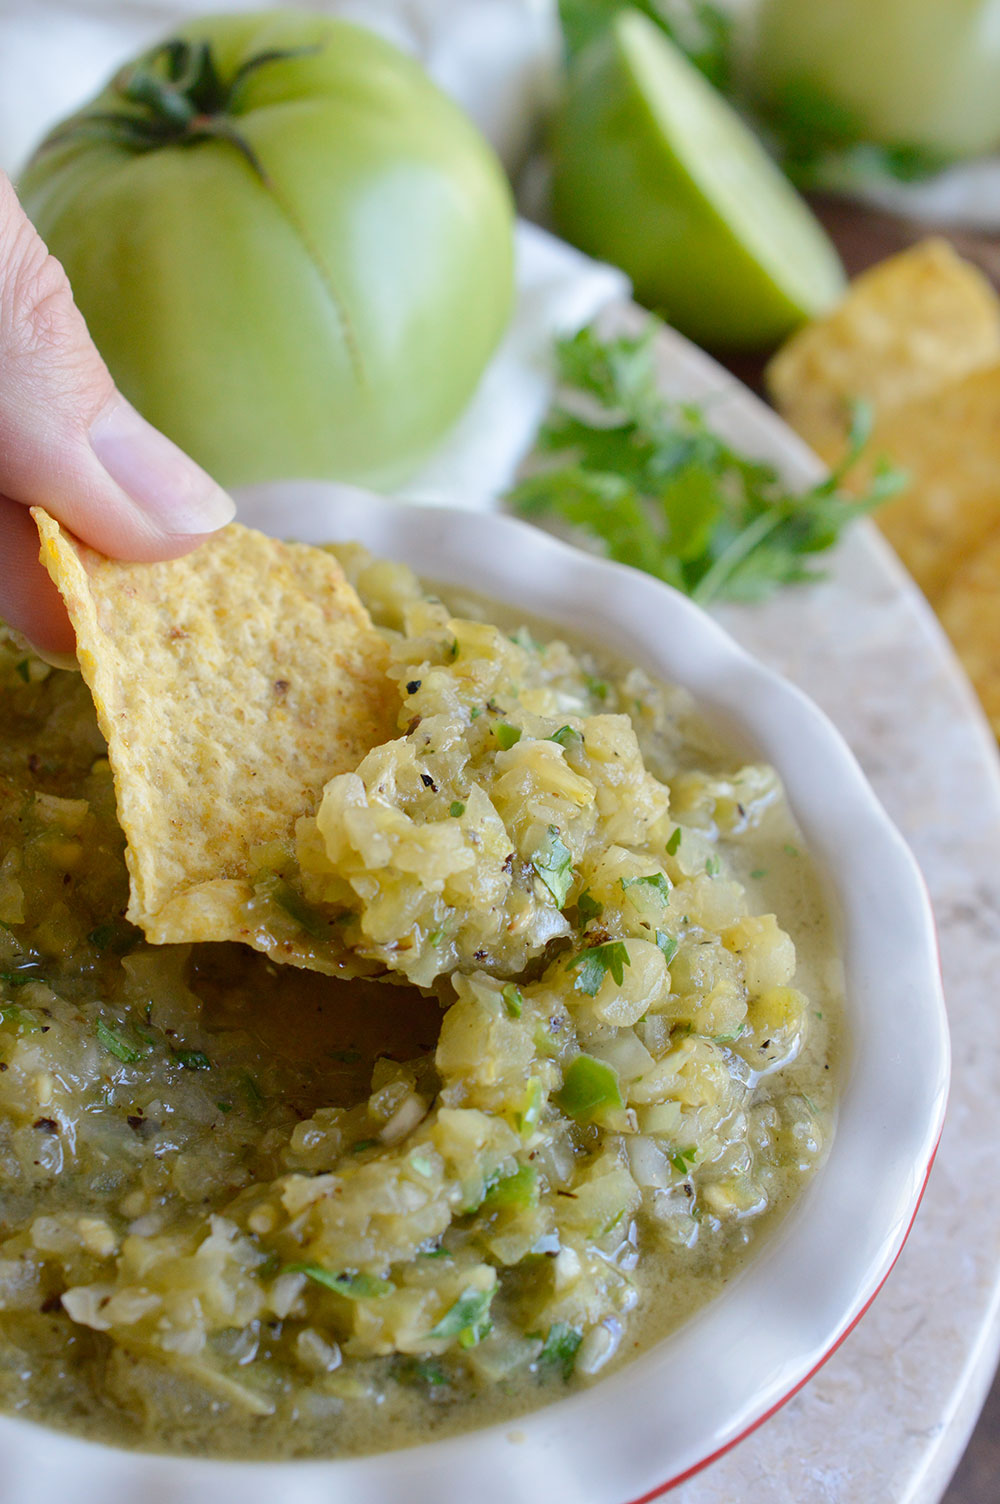 This Grilled Green Tomato Salsa Recipe is perfect for using up those green tomatoes! An easy green salsa verde with a smoky grilled flavor. The perfect summertime appetizer! Whole30, Paleo, Vegan #whole30recipes #paleorecipes #veganrecipes